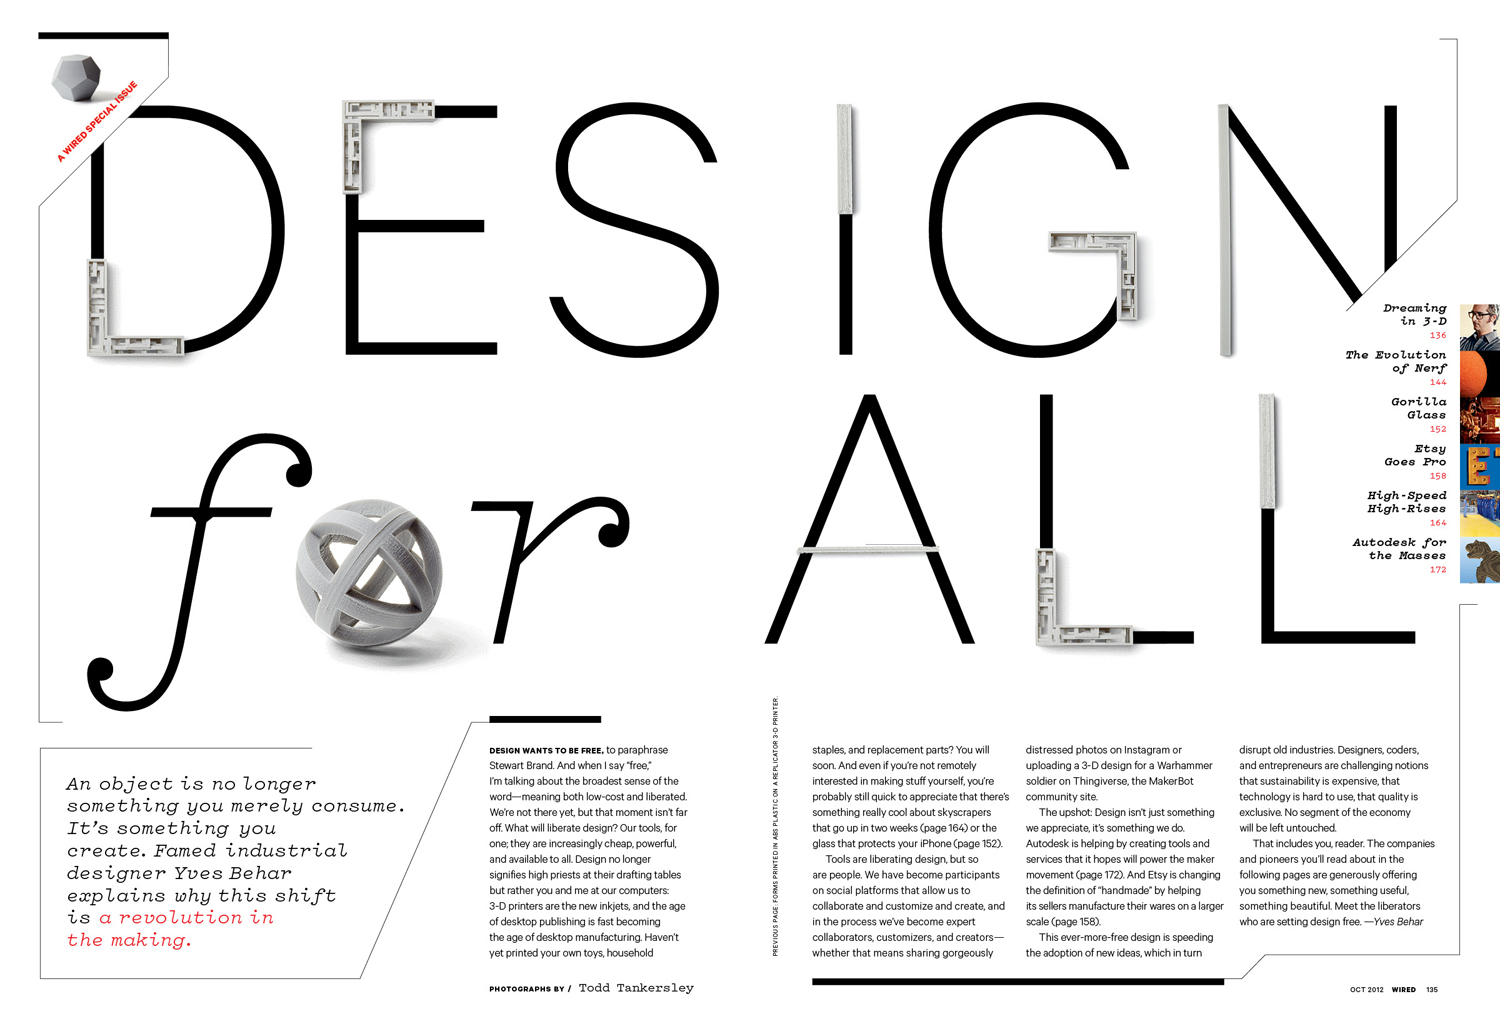 essays on graphic design My goal is to gain greater skills in the area of graphic design to ignite the creative spark in the greater community, as designers in magazines and other medias have provided me with throughout my life.